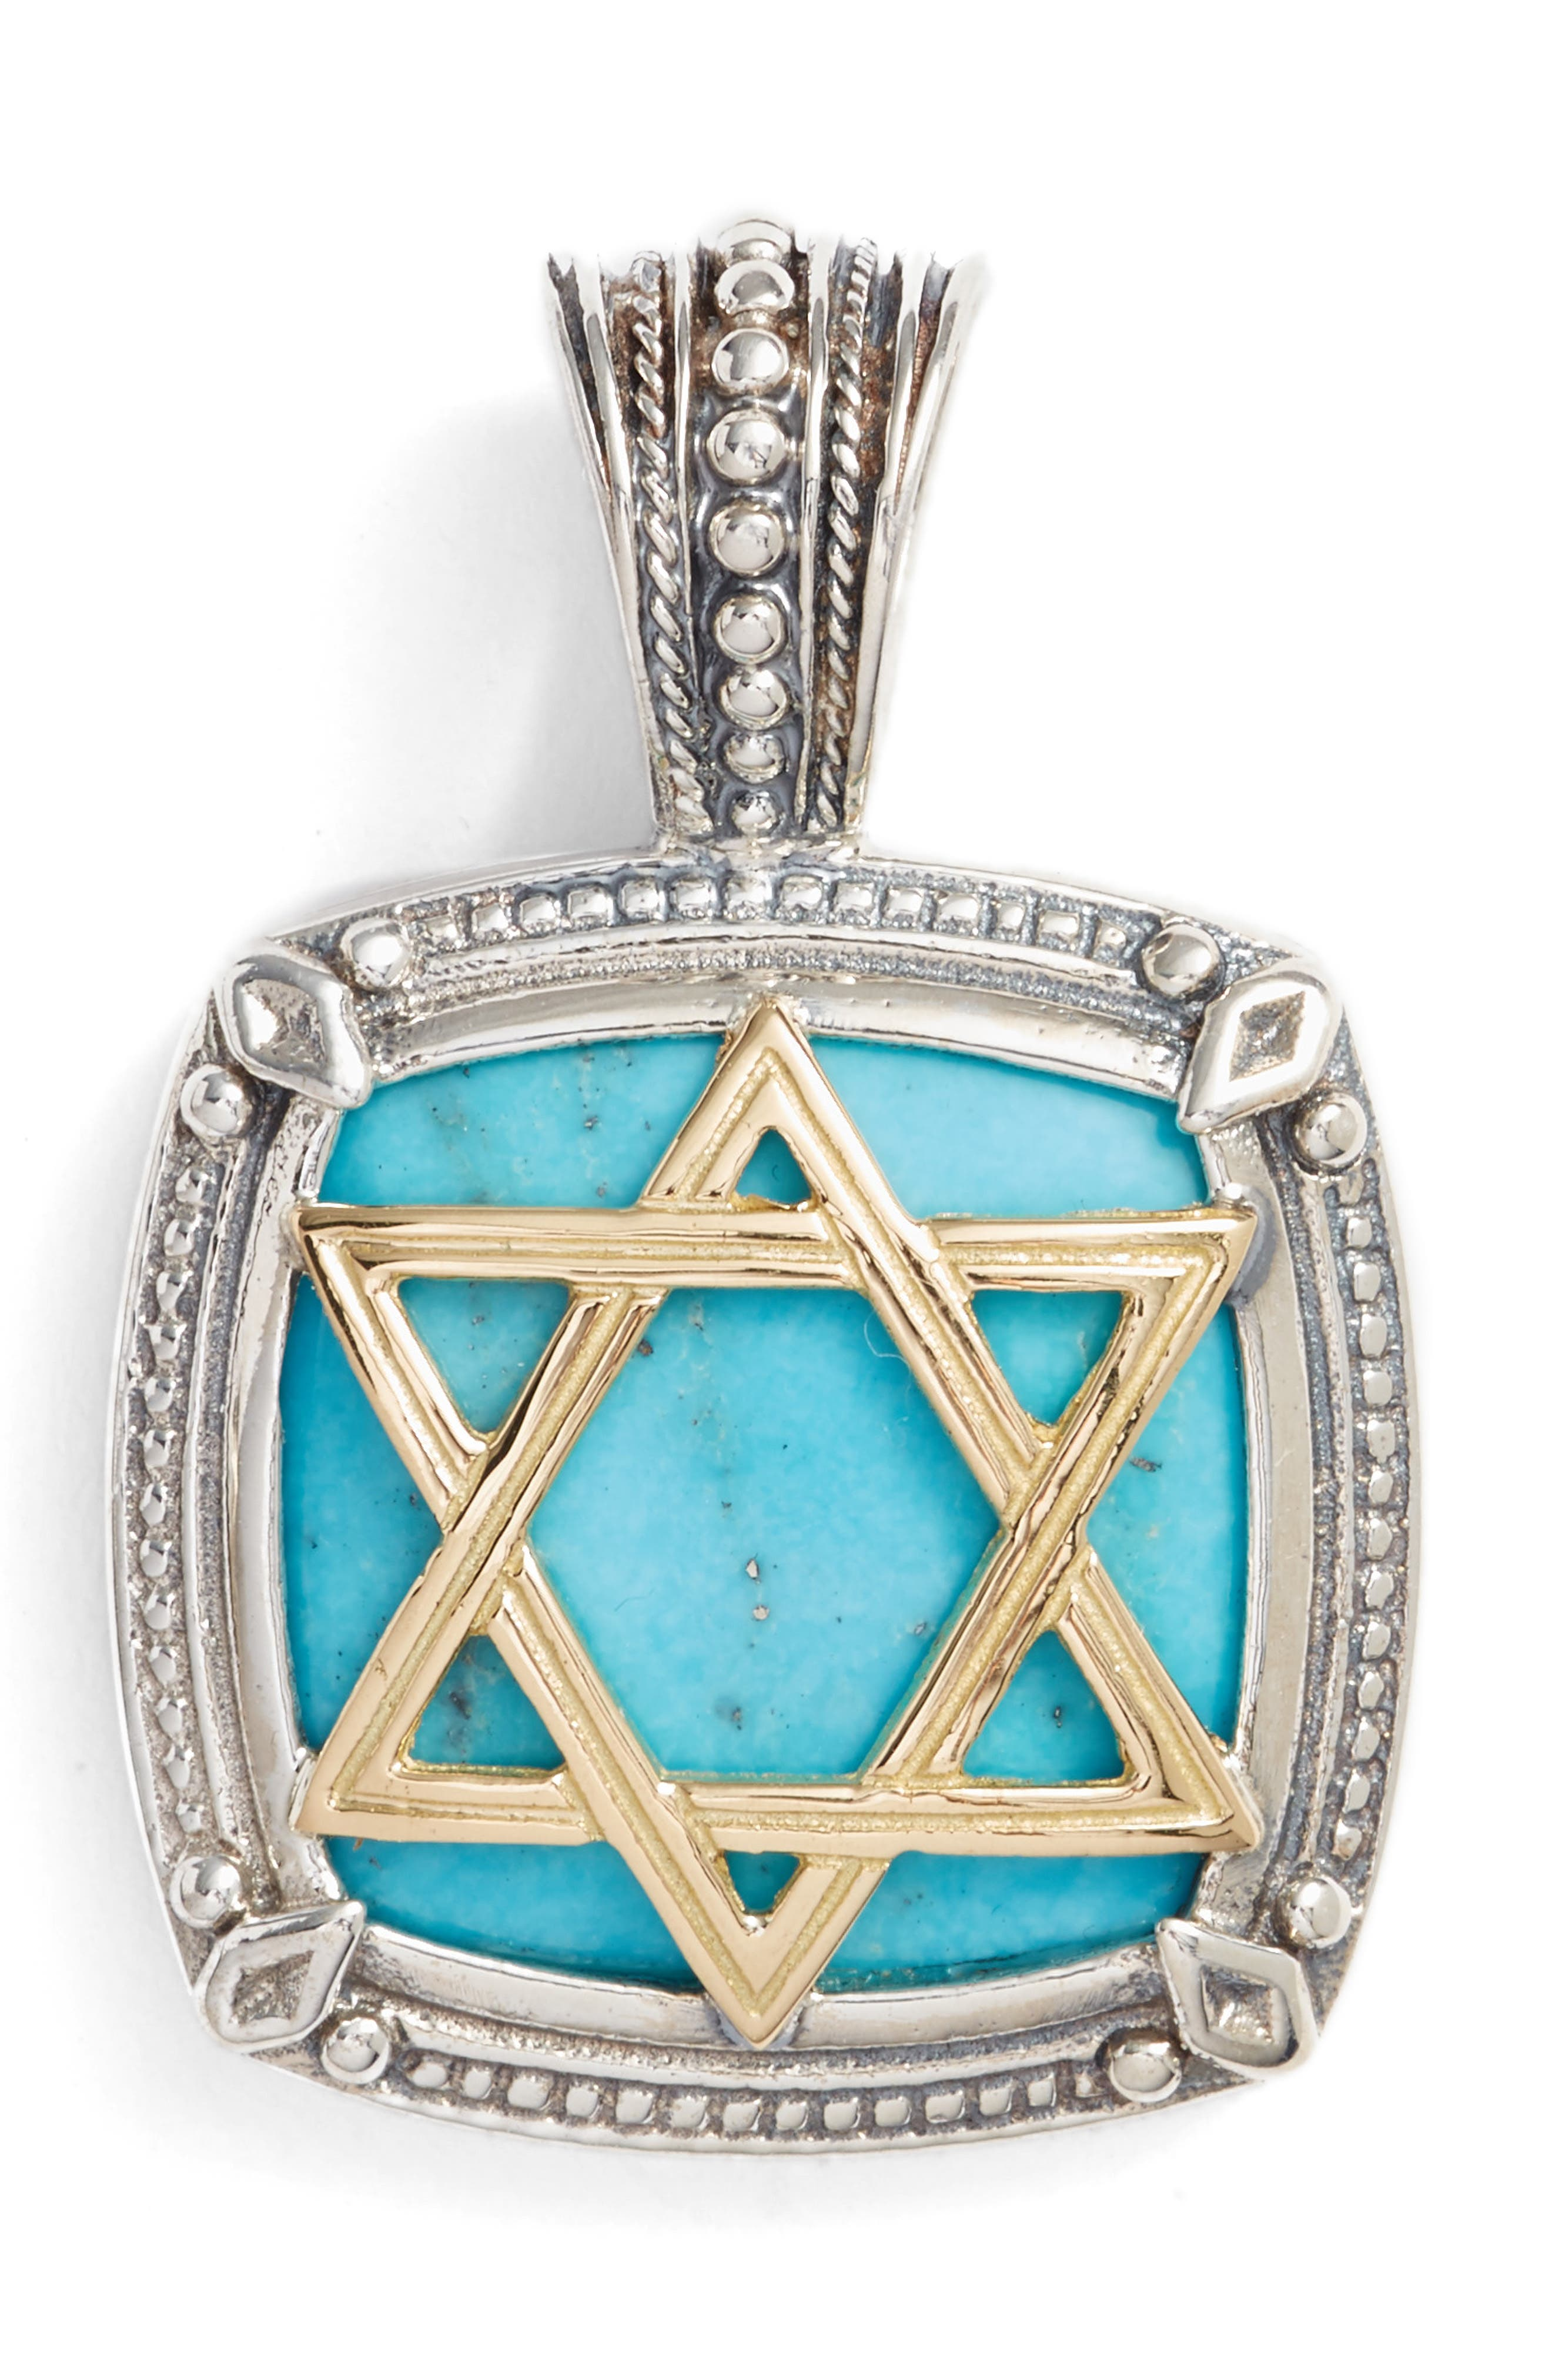 Heonos Star of David Turquoise Pendant,                         Main,                         color, SILVER/ GOLD/ TURQUOISE